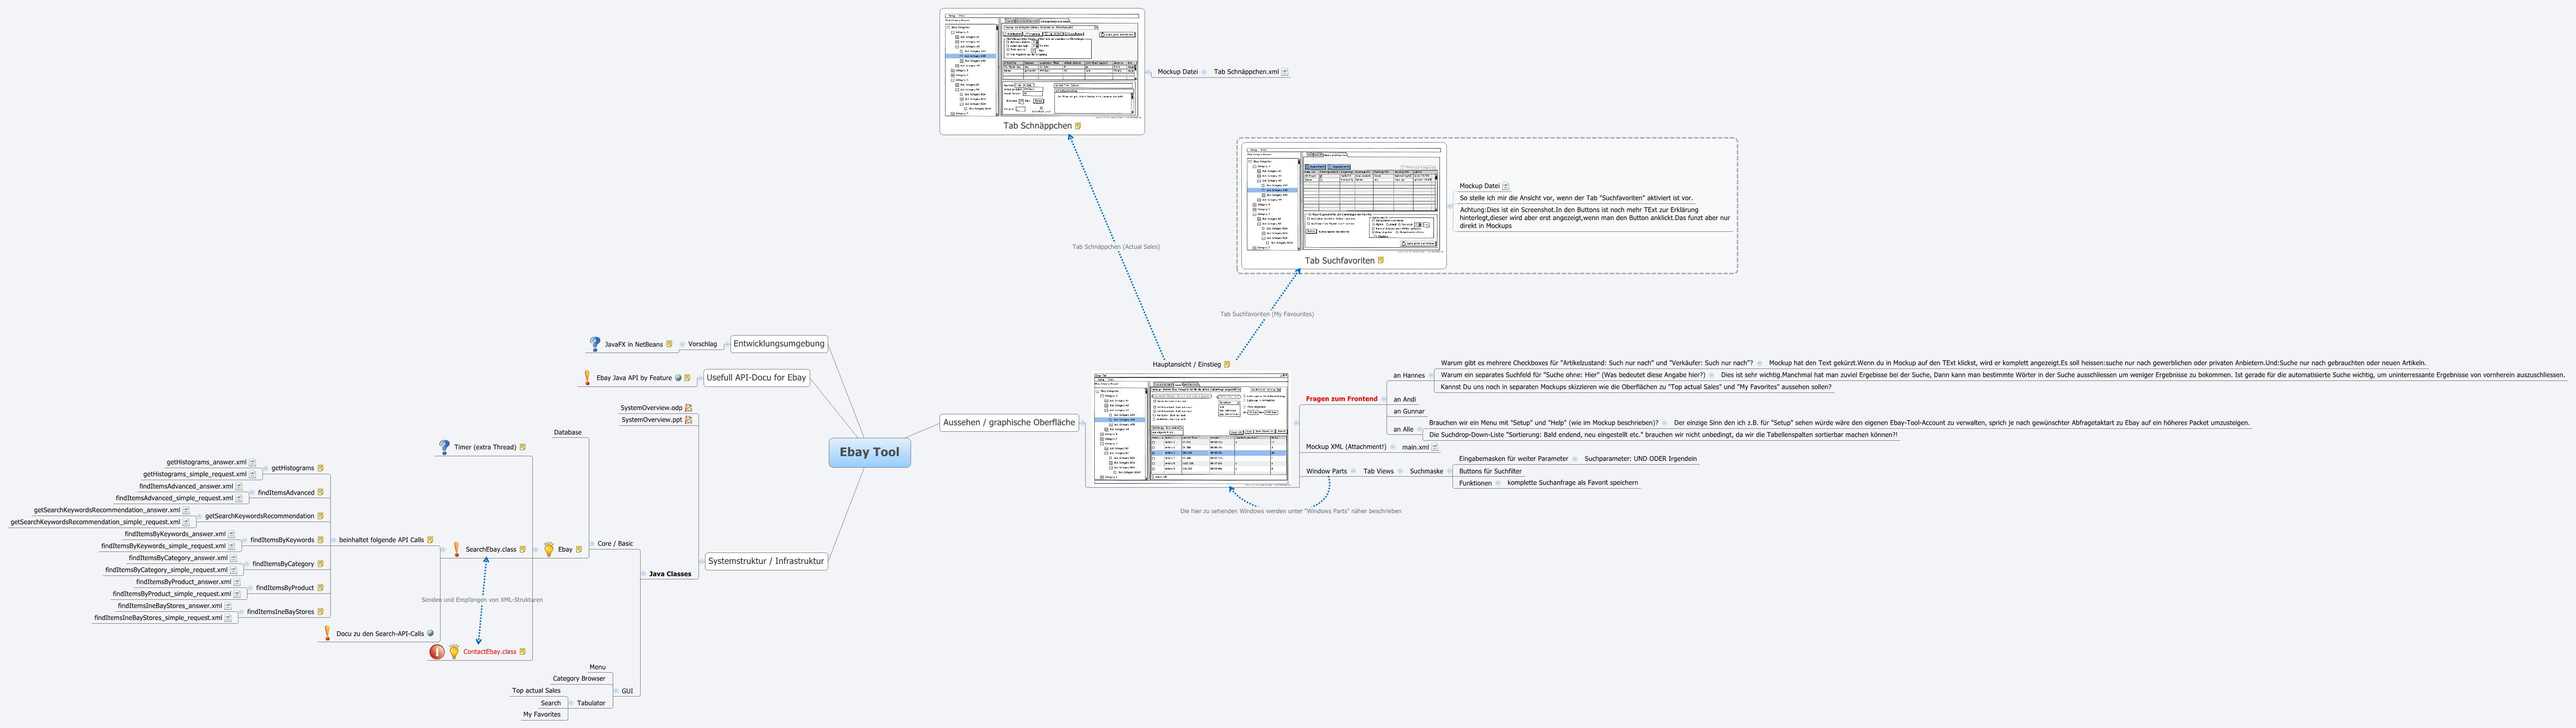 Xmind Share - Xmind - Mind Mapping Software pertaining to Er Diagram Ebay